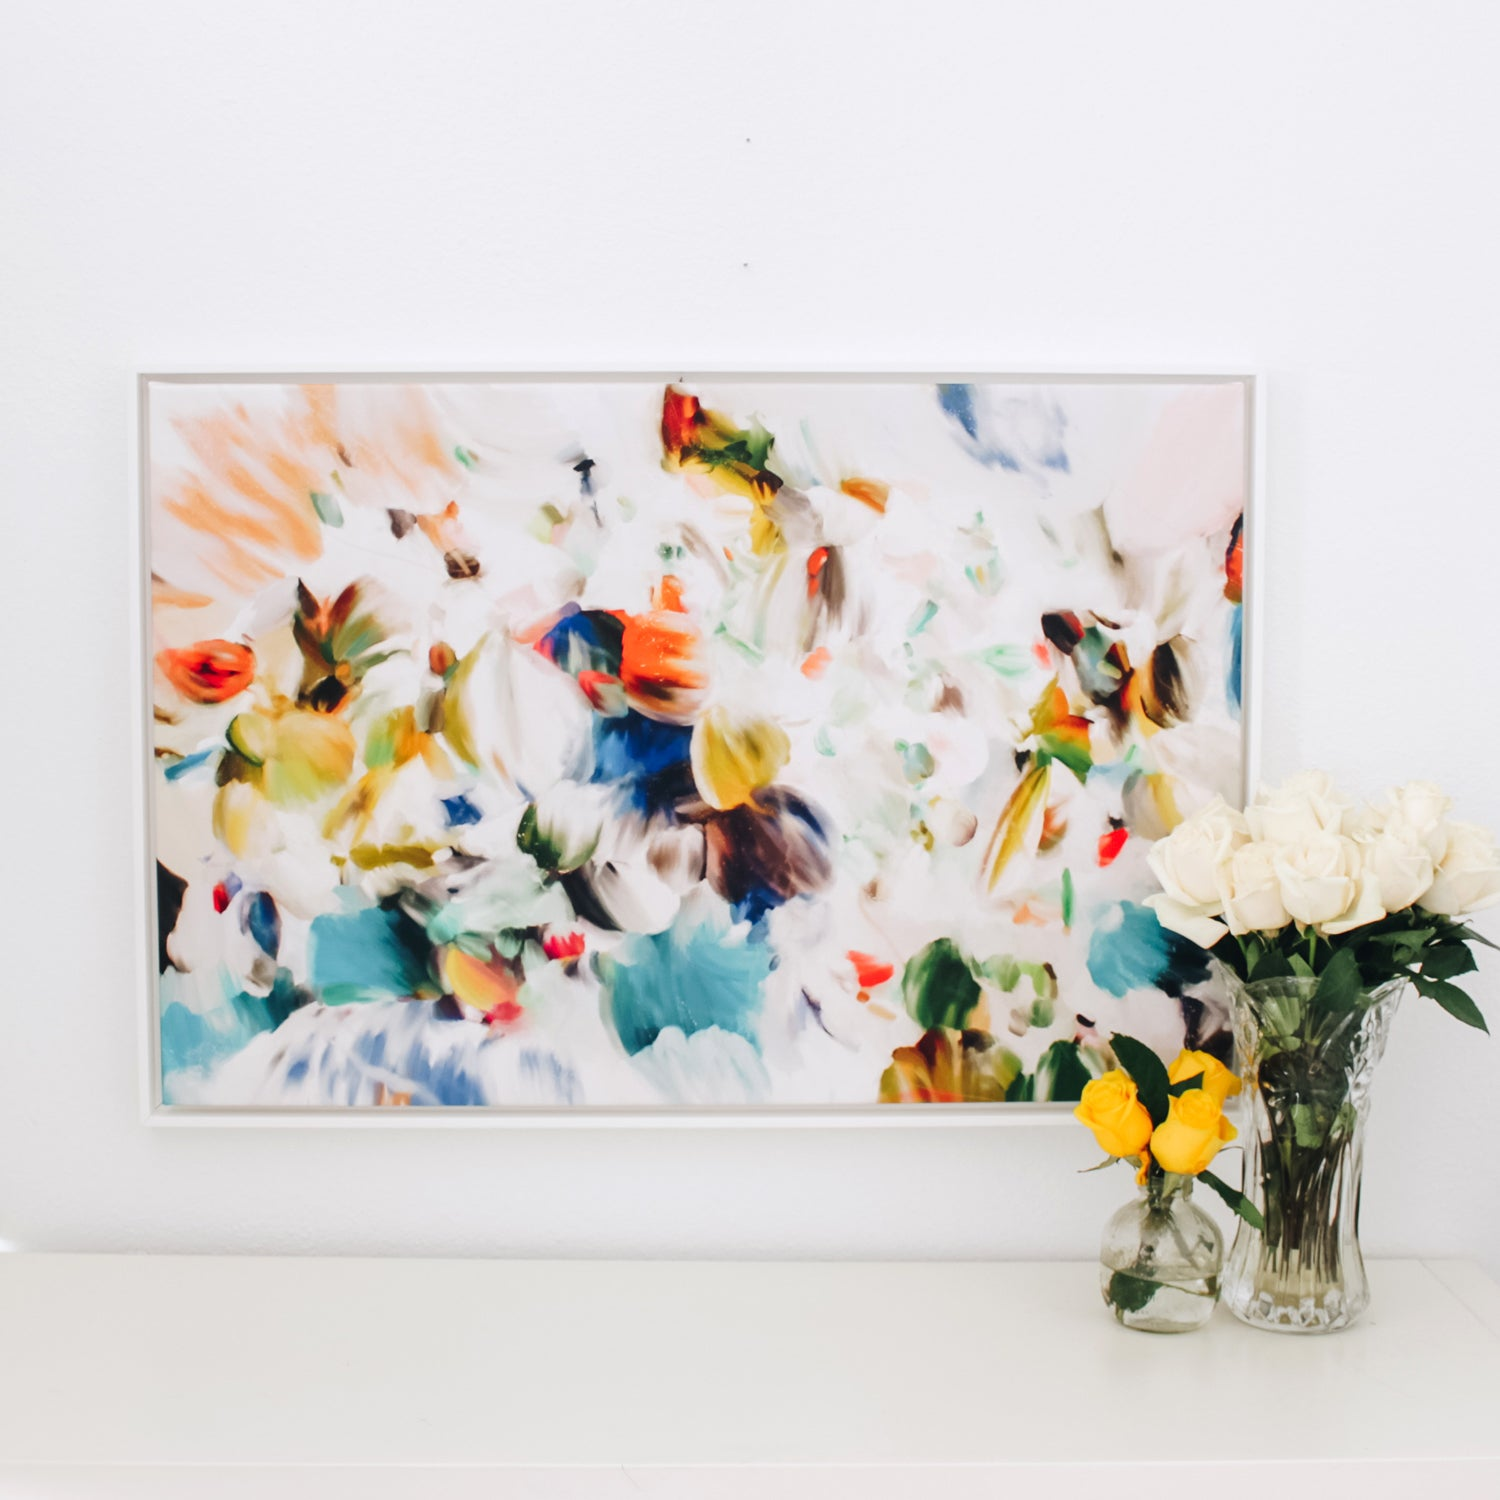 Primavera, abstract art print by Parima Studio